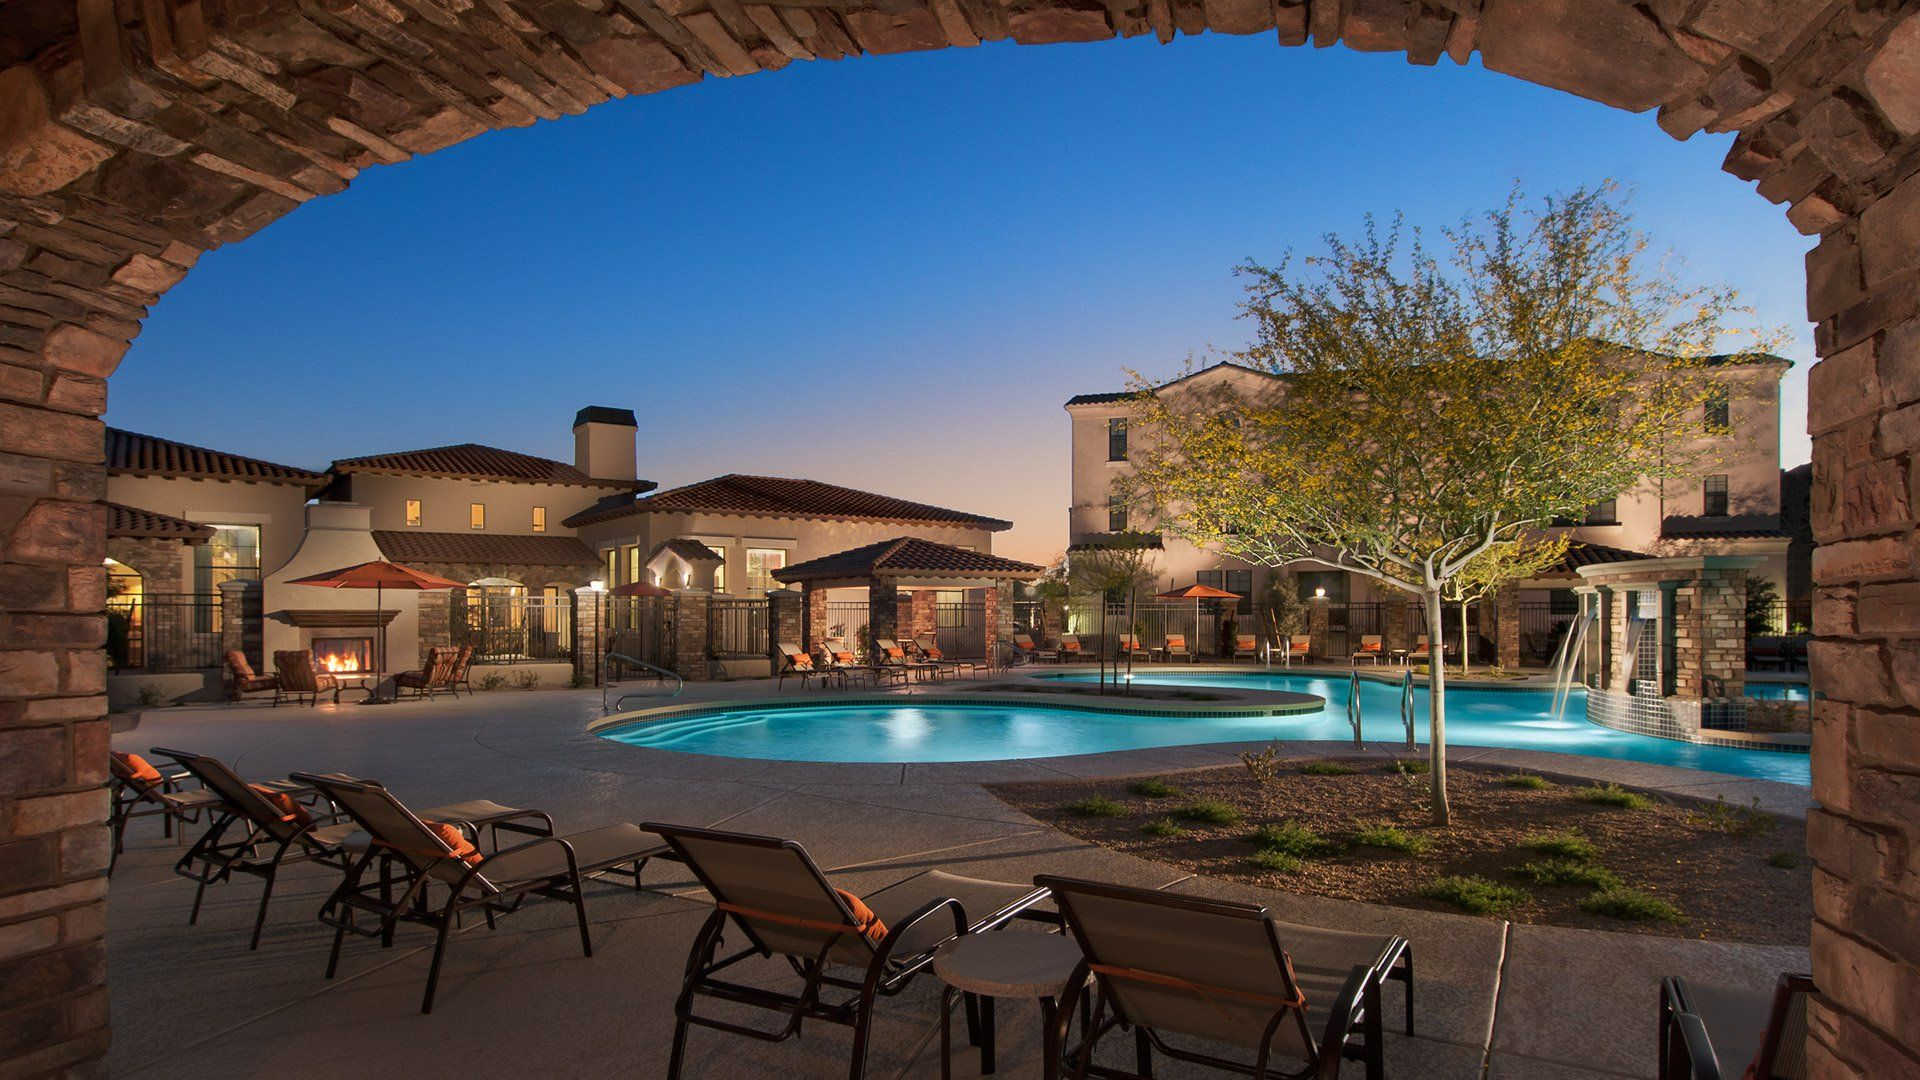 Take A Visual Tour Of San Norterra Apartments, A Luxury Apartment Community  In Phoenix.